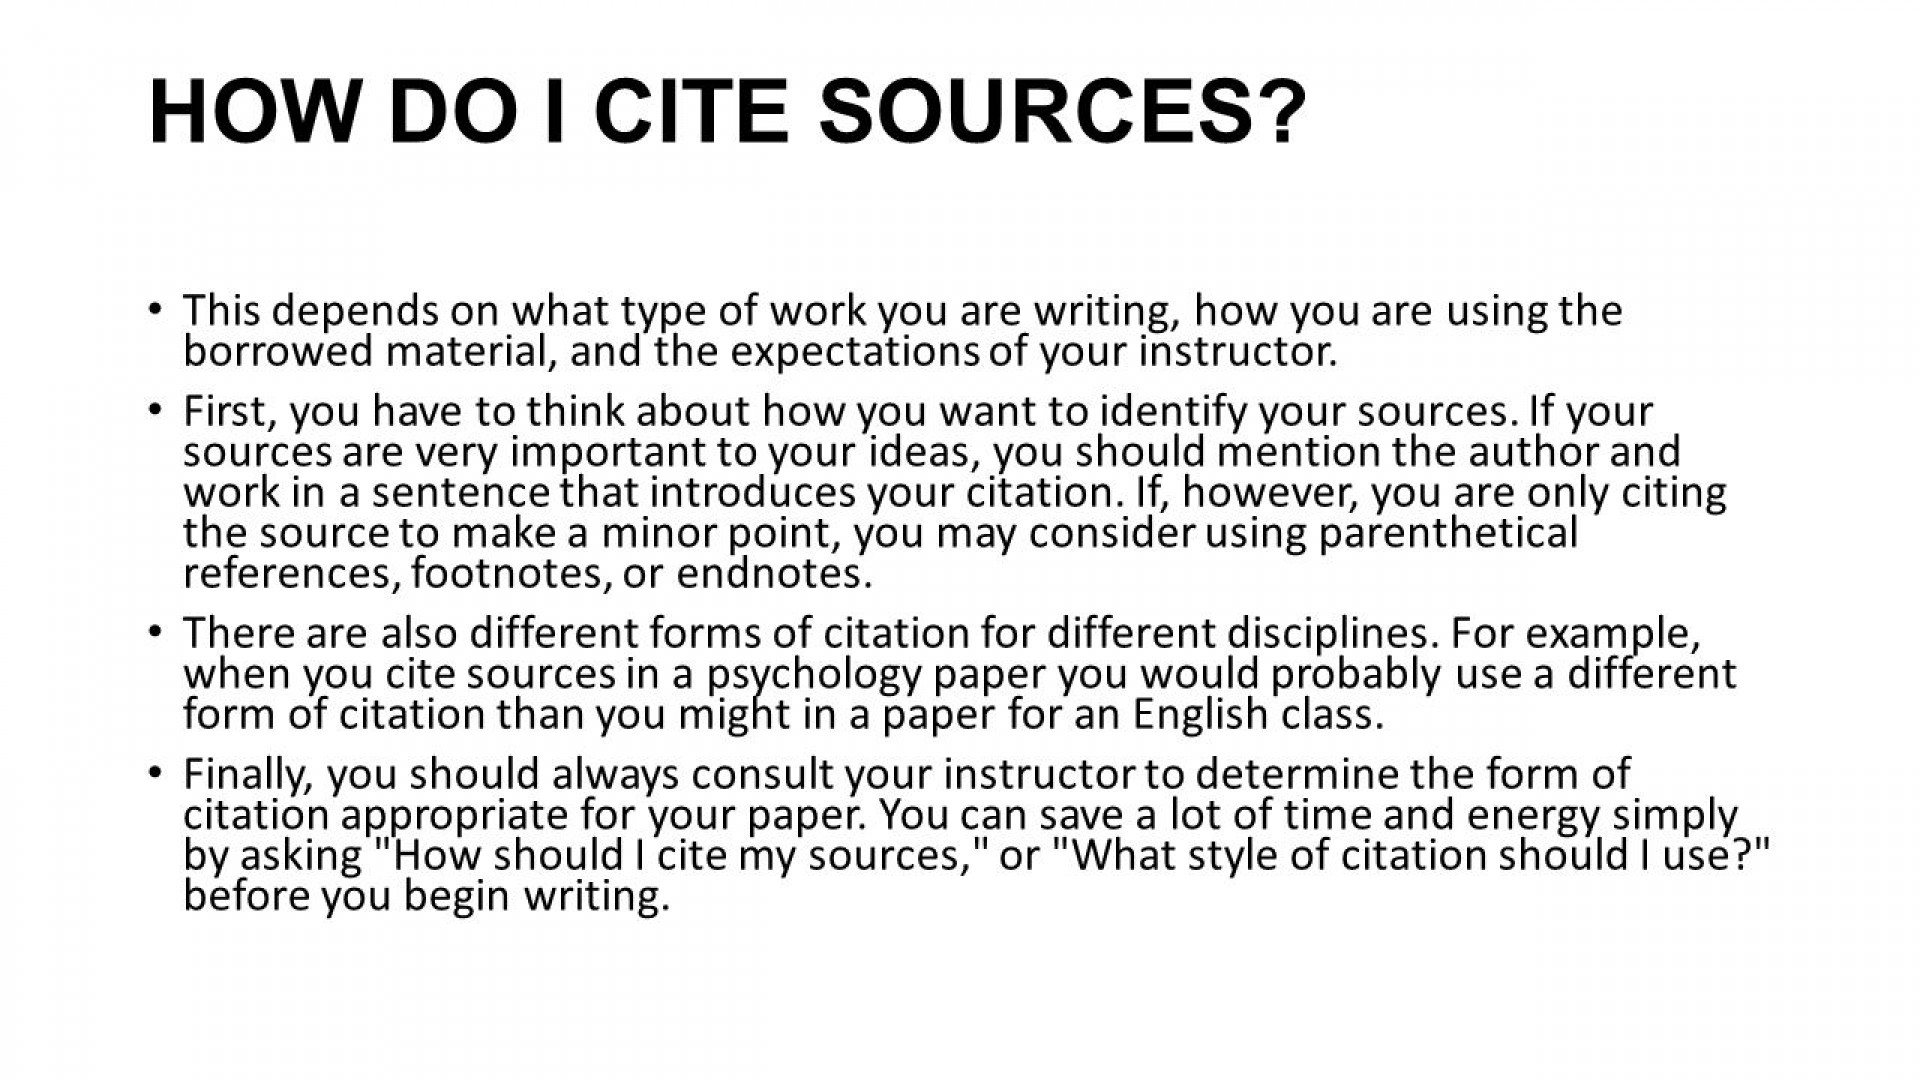 009 Cite An Essay How Do U Website In Mla Citation To Write Sl At The End Of Research Paper Online References Page Academic Archaicawful A Book 8th Edition Work Format Within Apa 1920